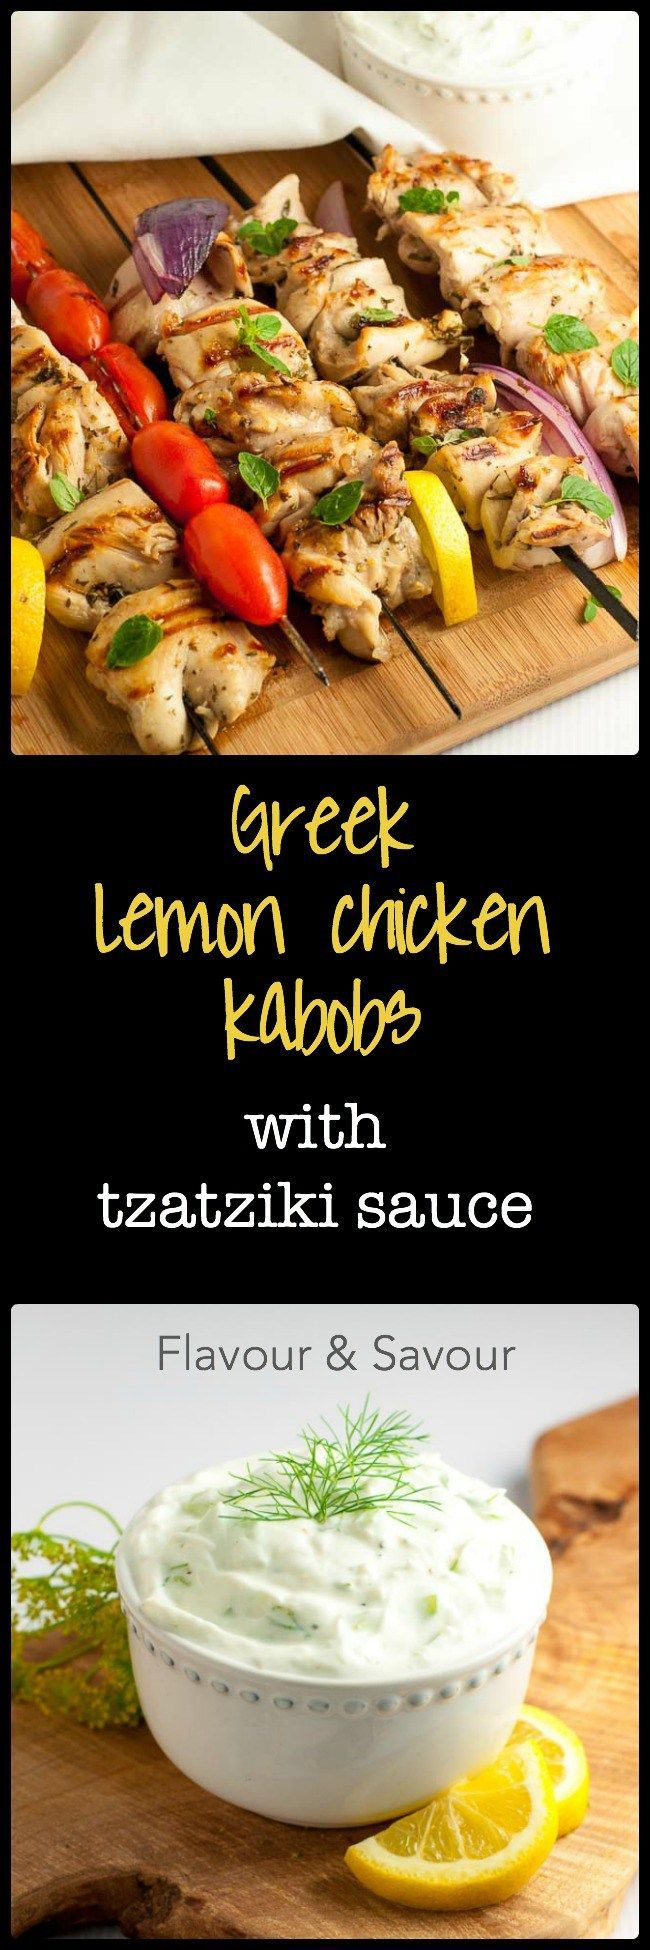 Greek Lemon Chicken Kabobs with homemade Tzatziki Sauce. Fresh herbs, lemon, garlic and red wine vinegar make a fabulous marinade for juicy, succulent chicken skewers. |www.flavourandsavour.com